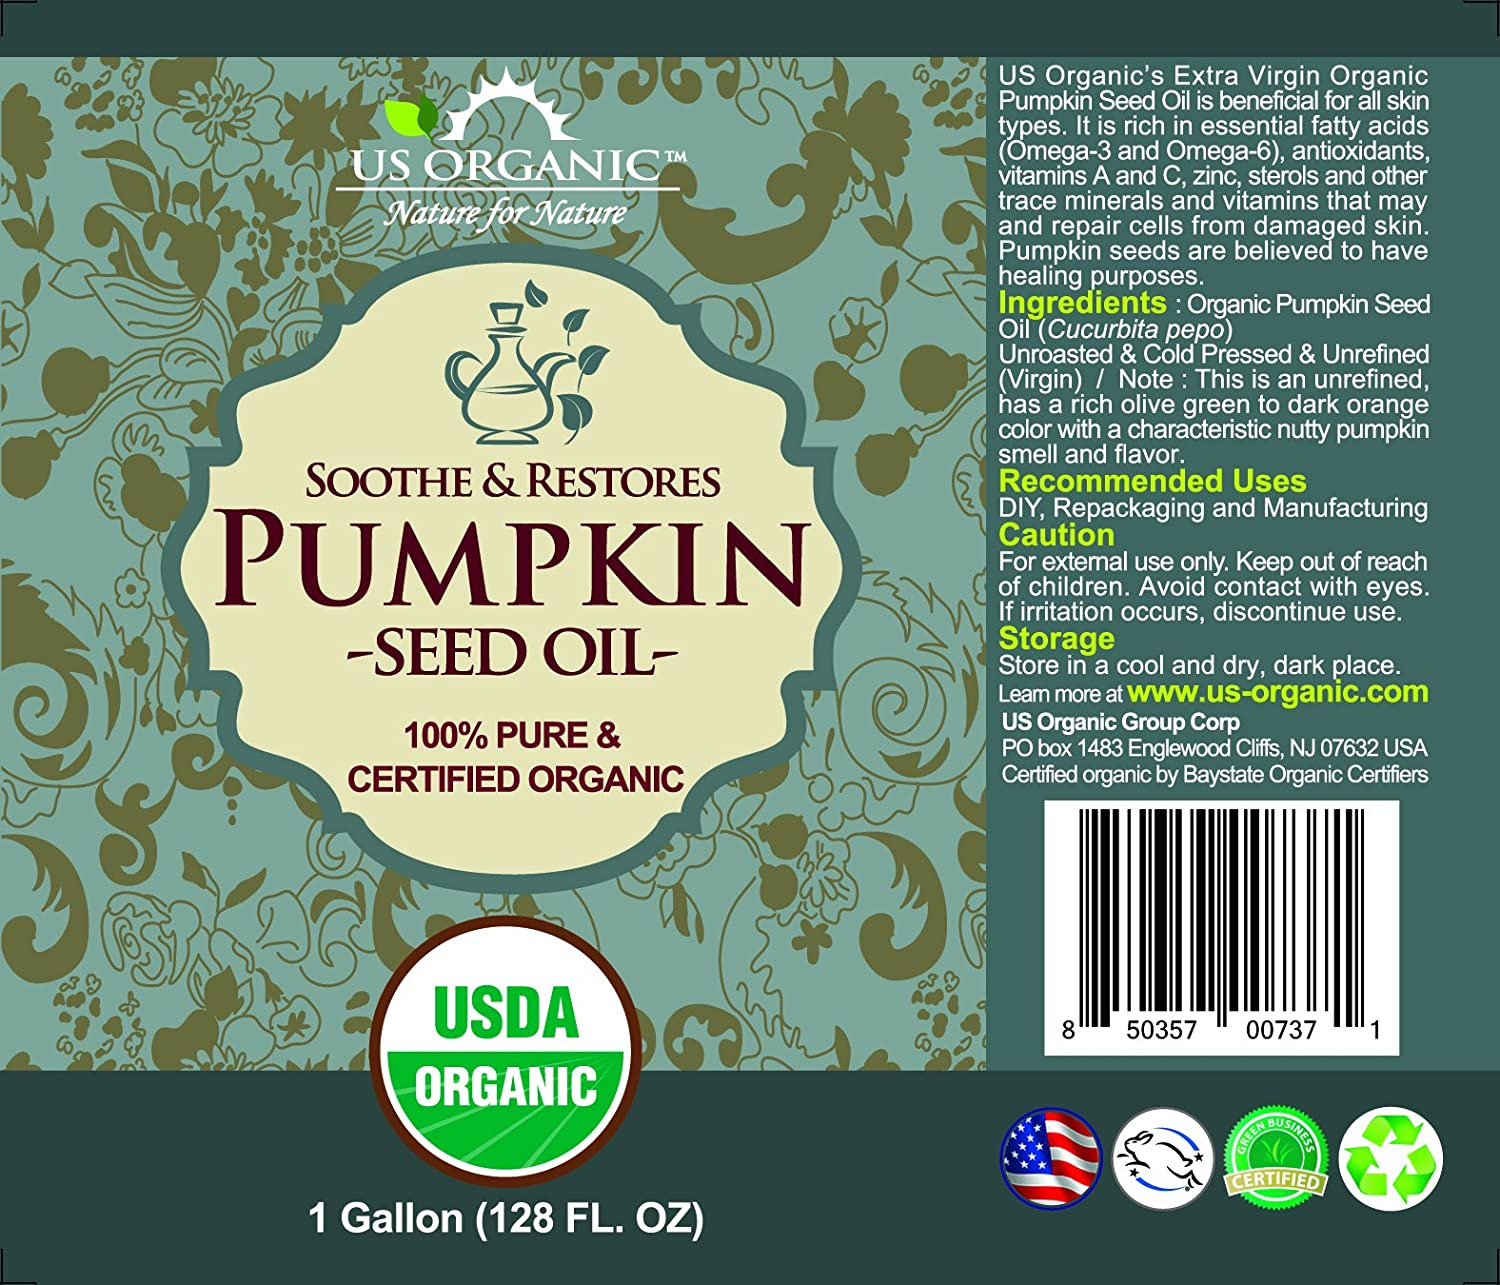 US Organic Pumpkin Seed Oil Bulk pack, USDA Certified Organic,100 Pure Natural, Cold Pressed Virgin, Unrefined 128 oz 1 Gallon